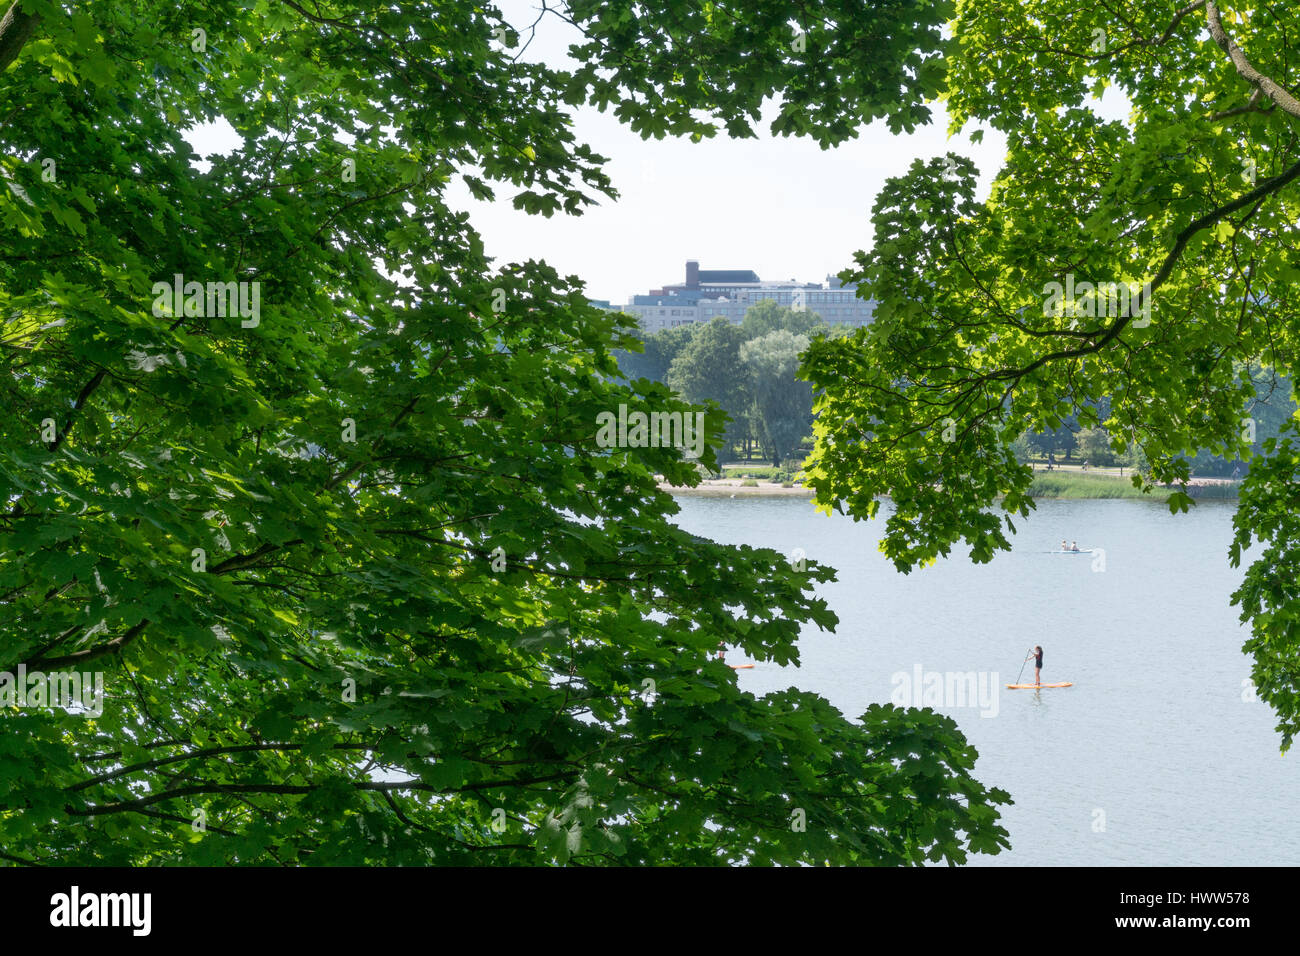 PEOPLE ON STAND UP PADDEL BOARDS ON A LAKE IN HELSINKI SURROUNDED BY TREES - Stock Image